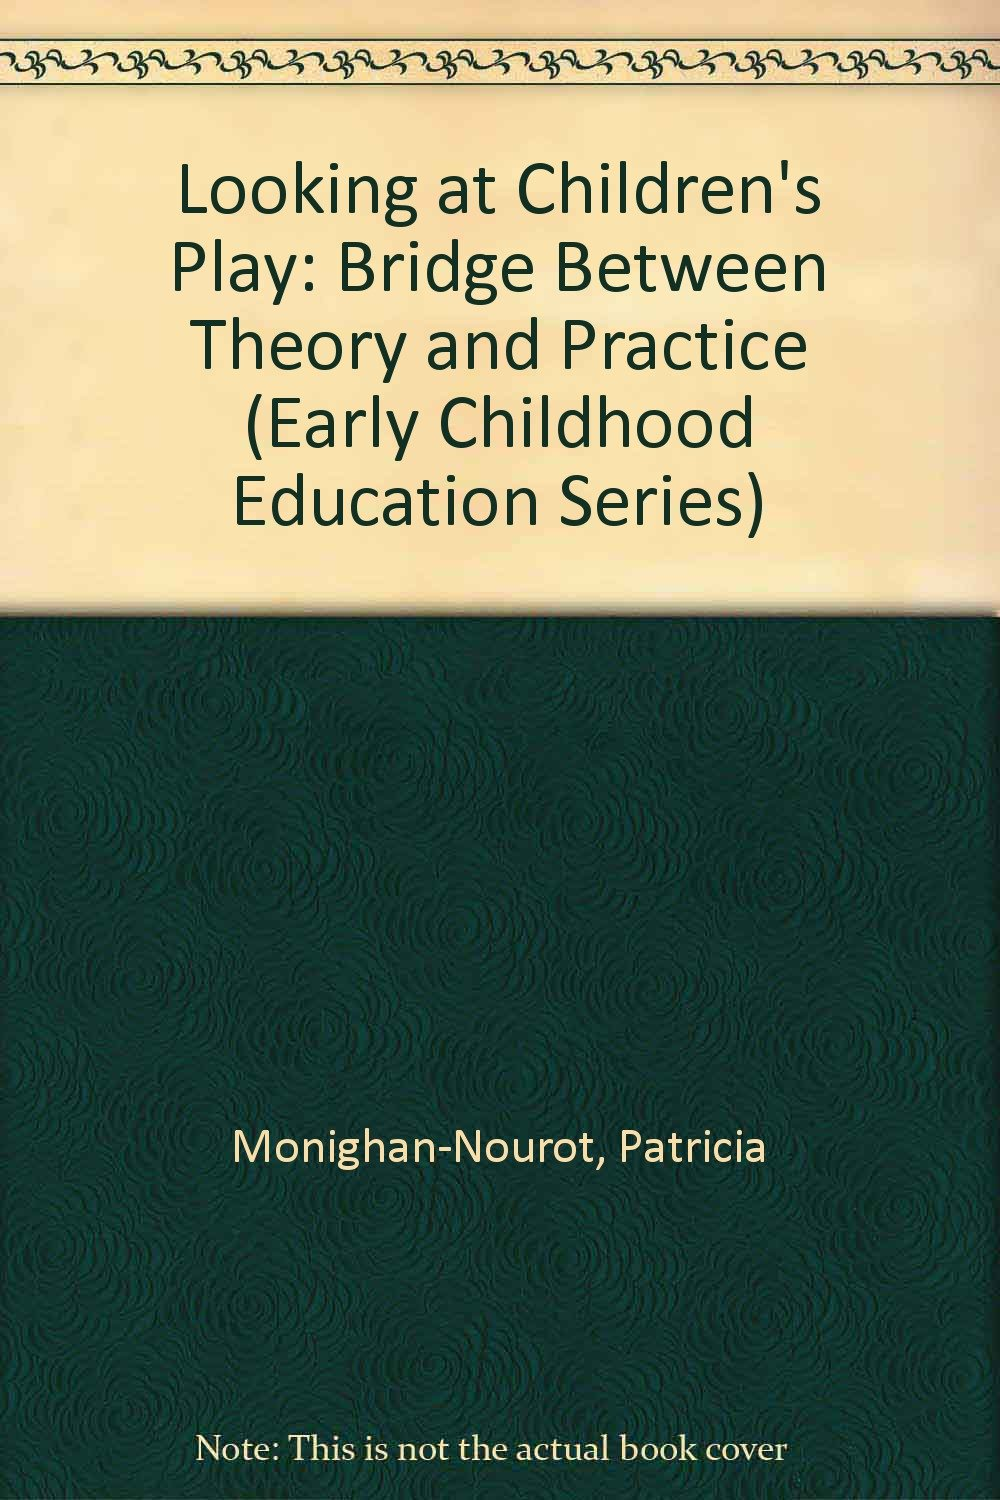 theories of play in early childhood education